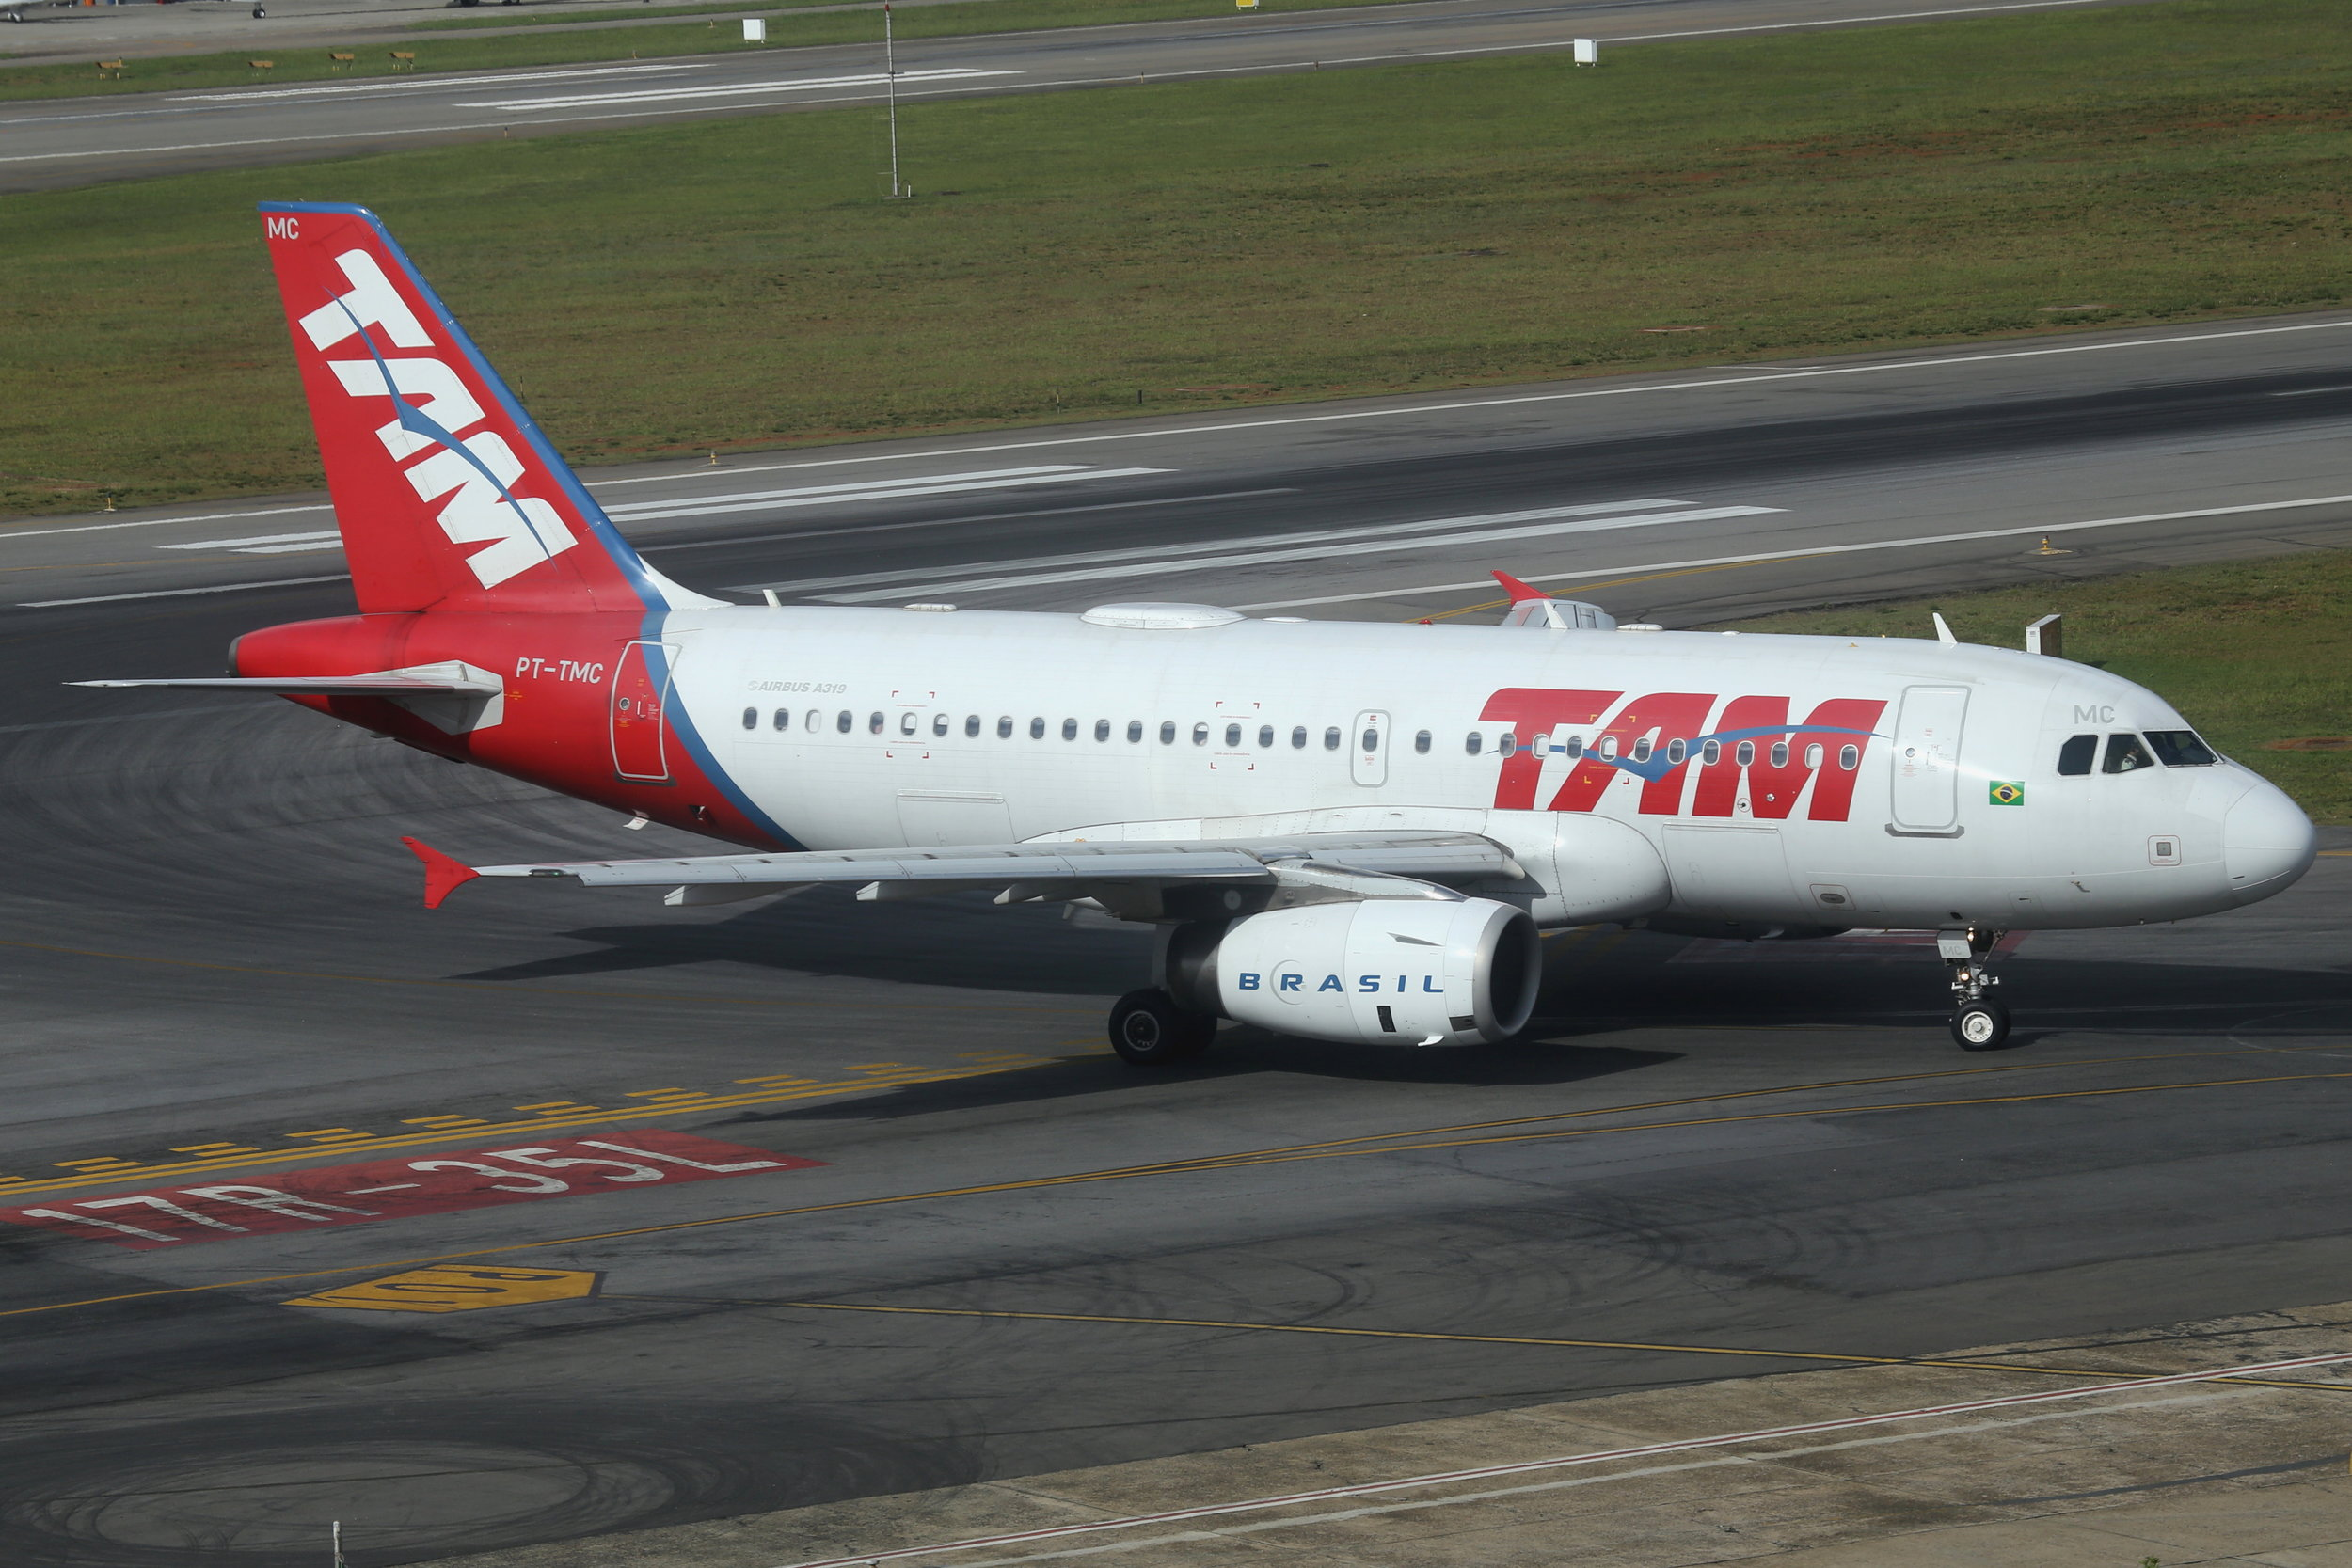 PT-TMC TAM A319 taken from the Slaveiro Slim hotel at Sao Paulo Congonhas Airport 28th April 2019 by John Wood